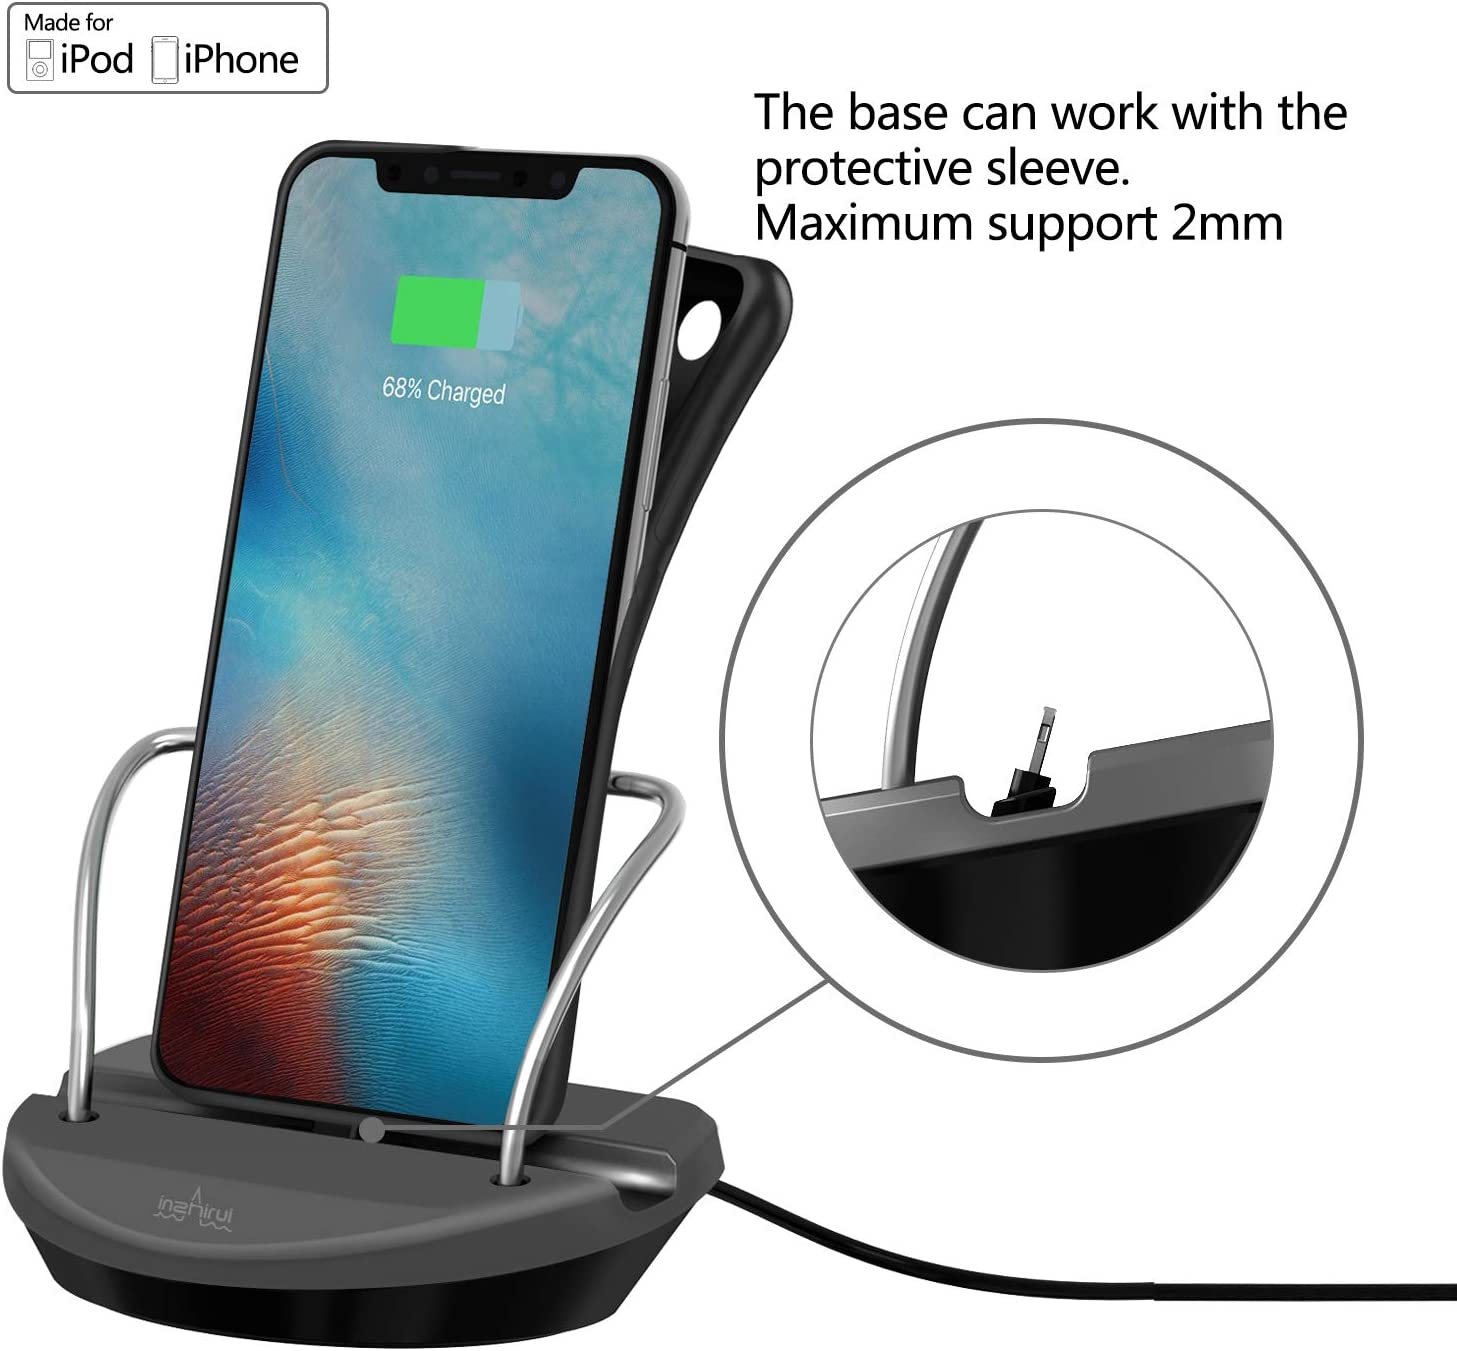 Supports Cases 0-2mm Office Base Compatible for i-Phone Charger Dock Desktop Charging Stand Station